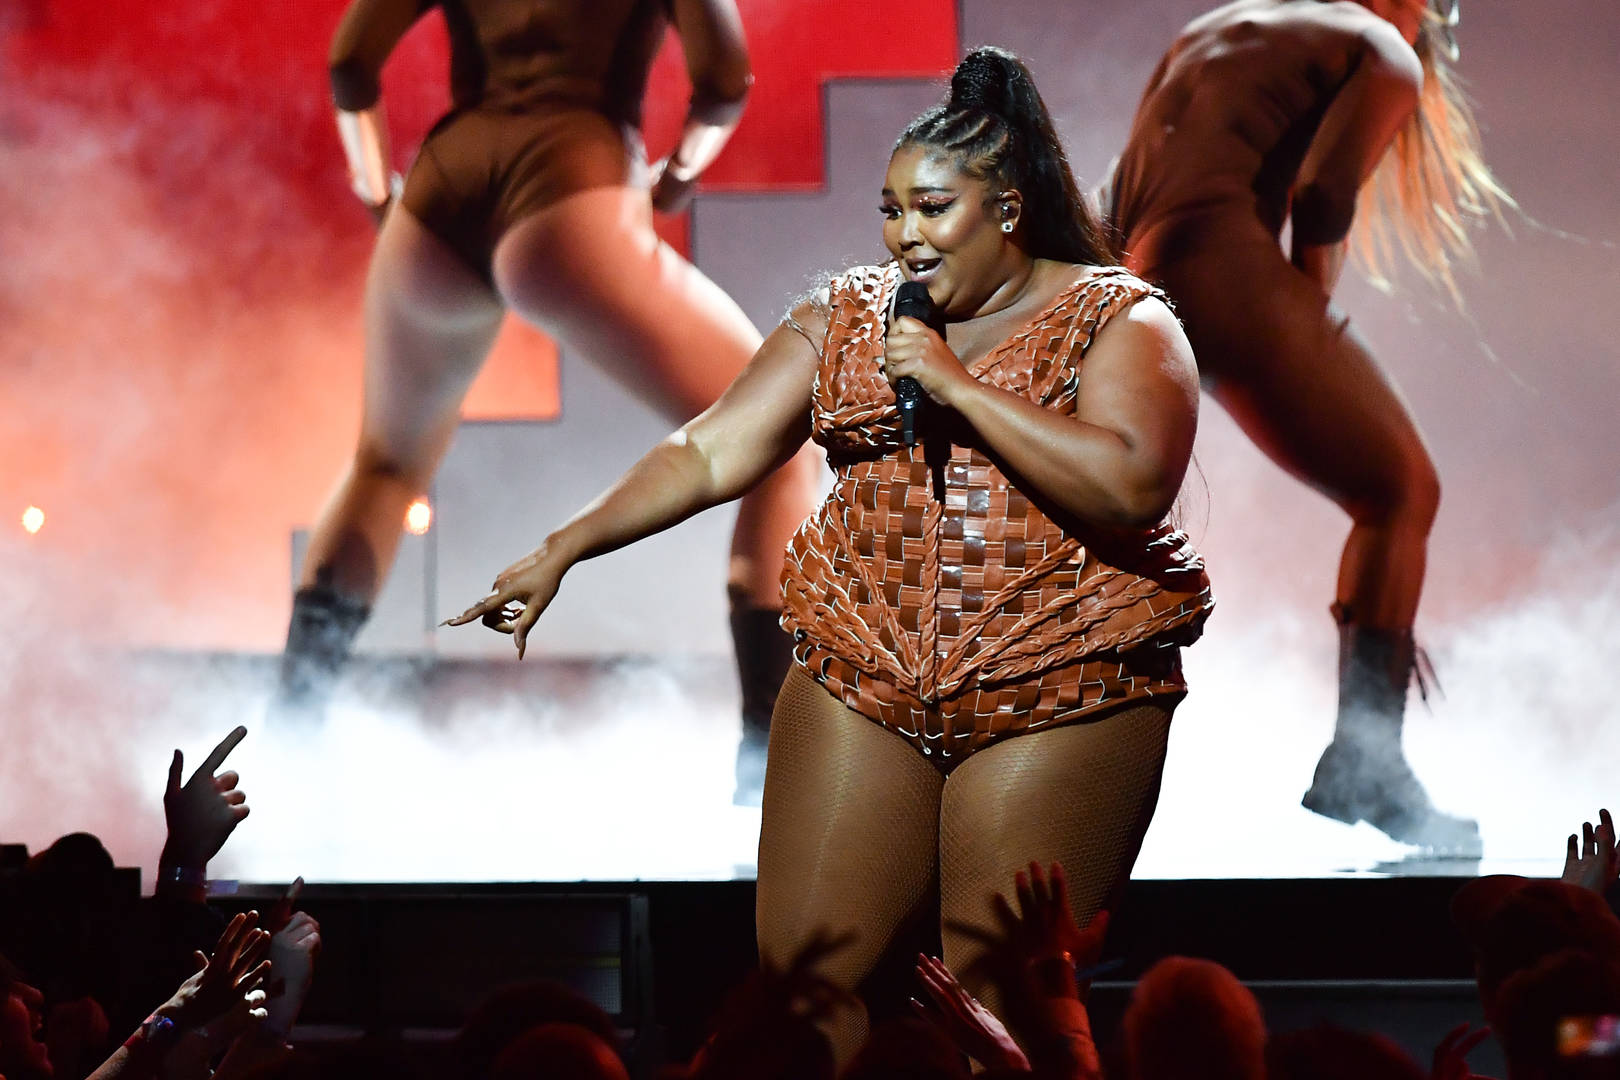 Lizzo hints TikTok deleted her bikini videos because of fatphobia